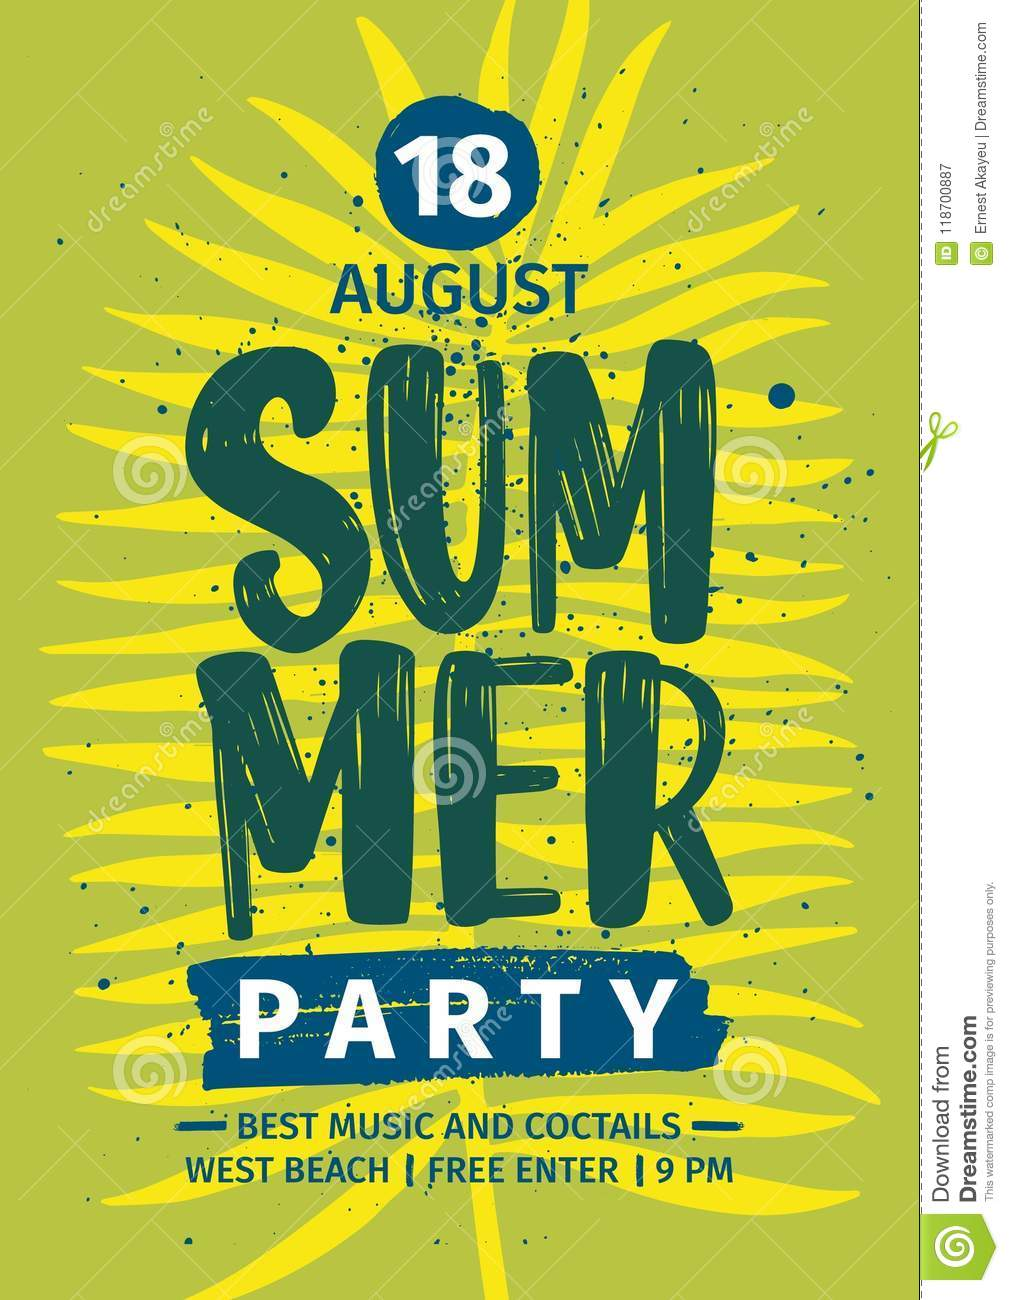 Summer Party Invitation Announcement Or Flyer Template With